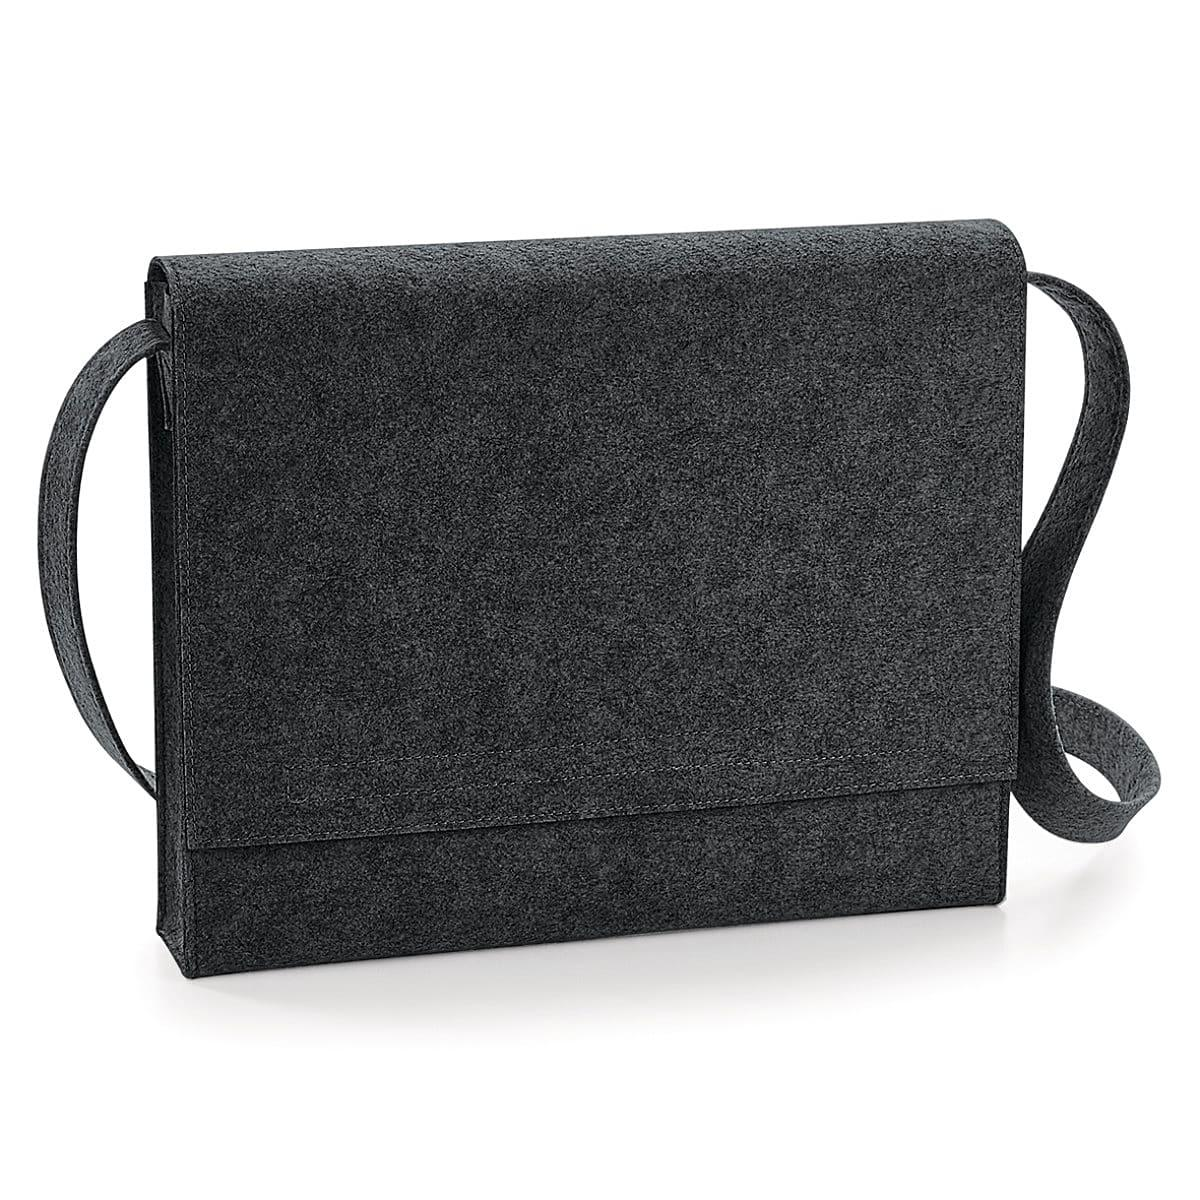 Bagbase Felt Messenger in Charcoal Melange (Product Code: BG730)